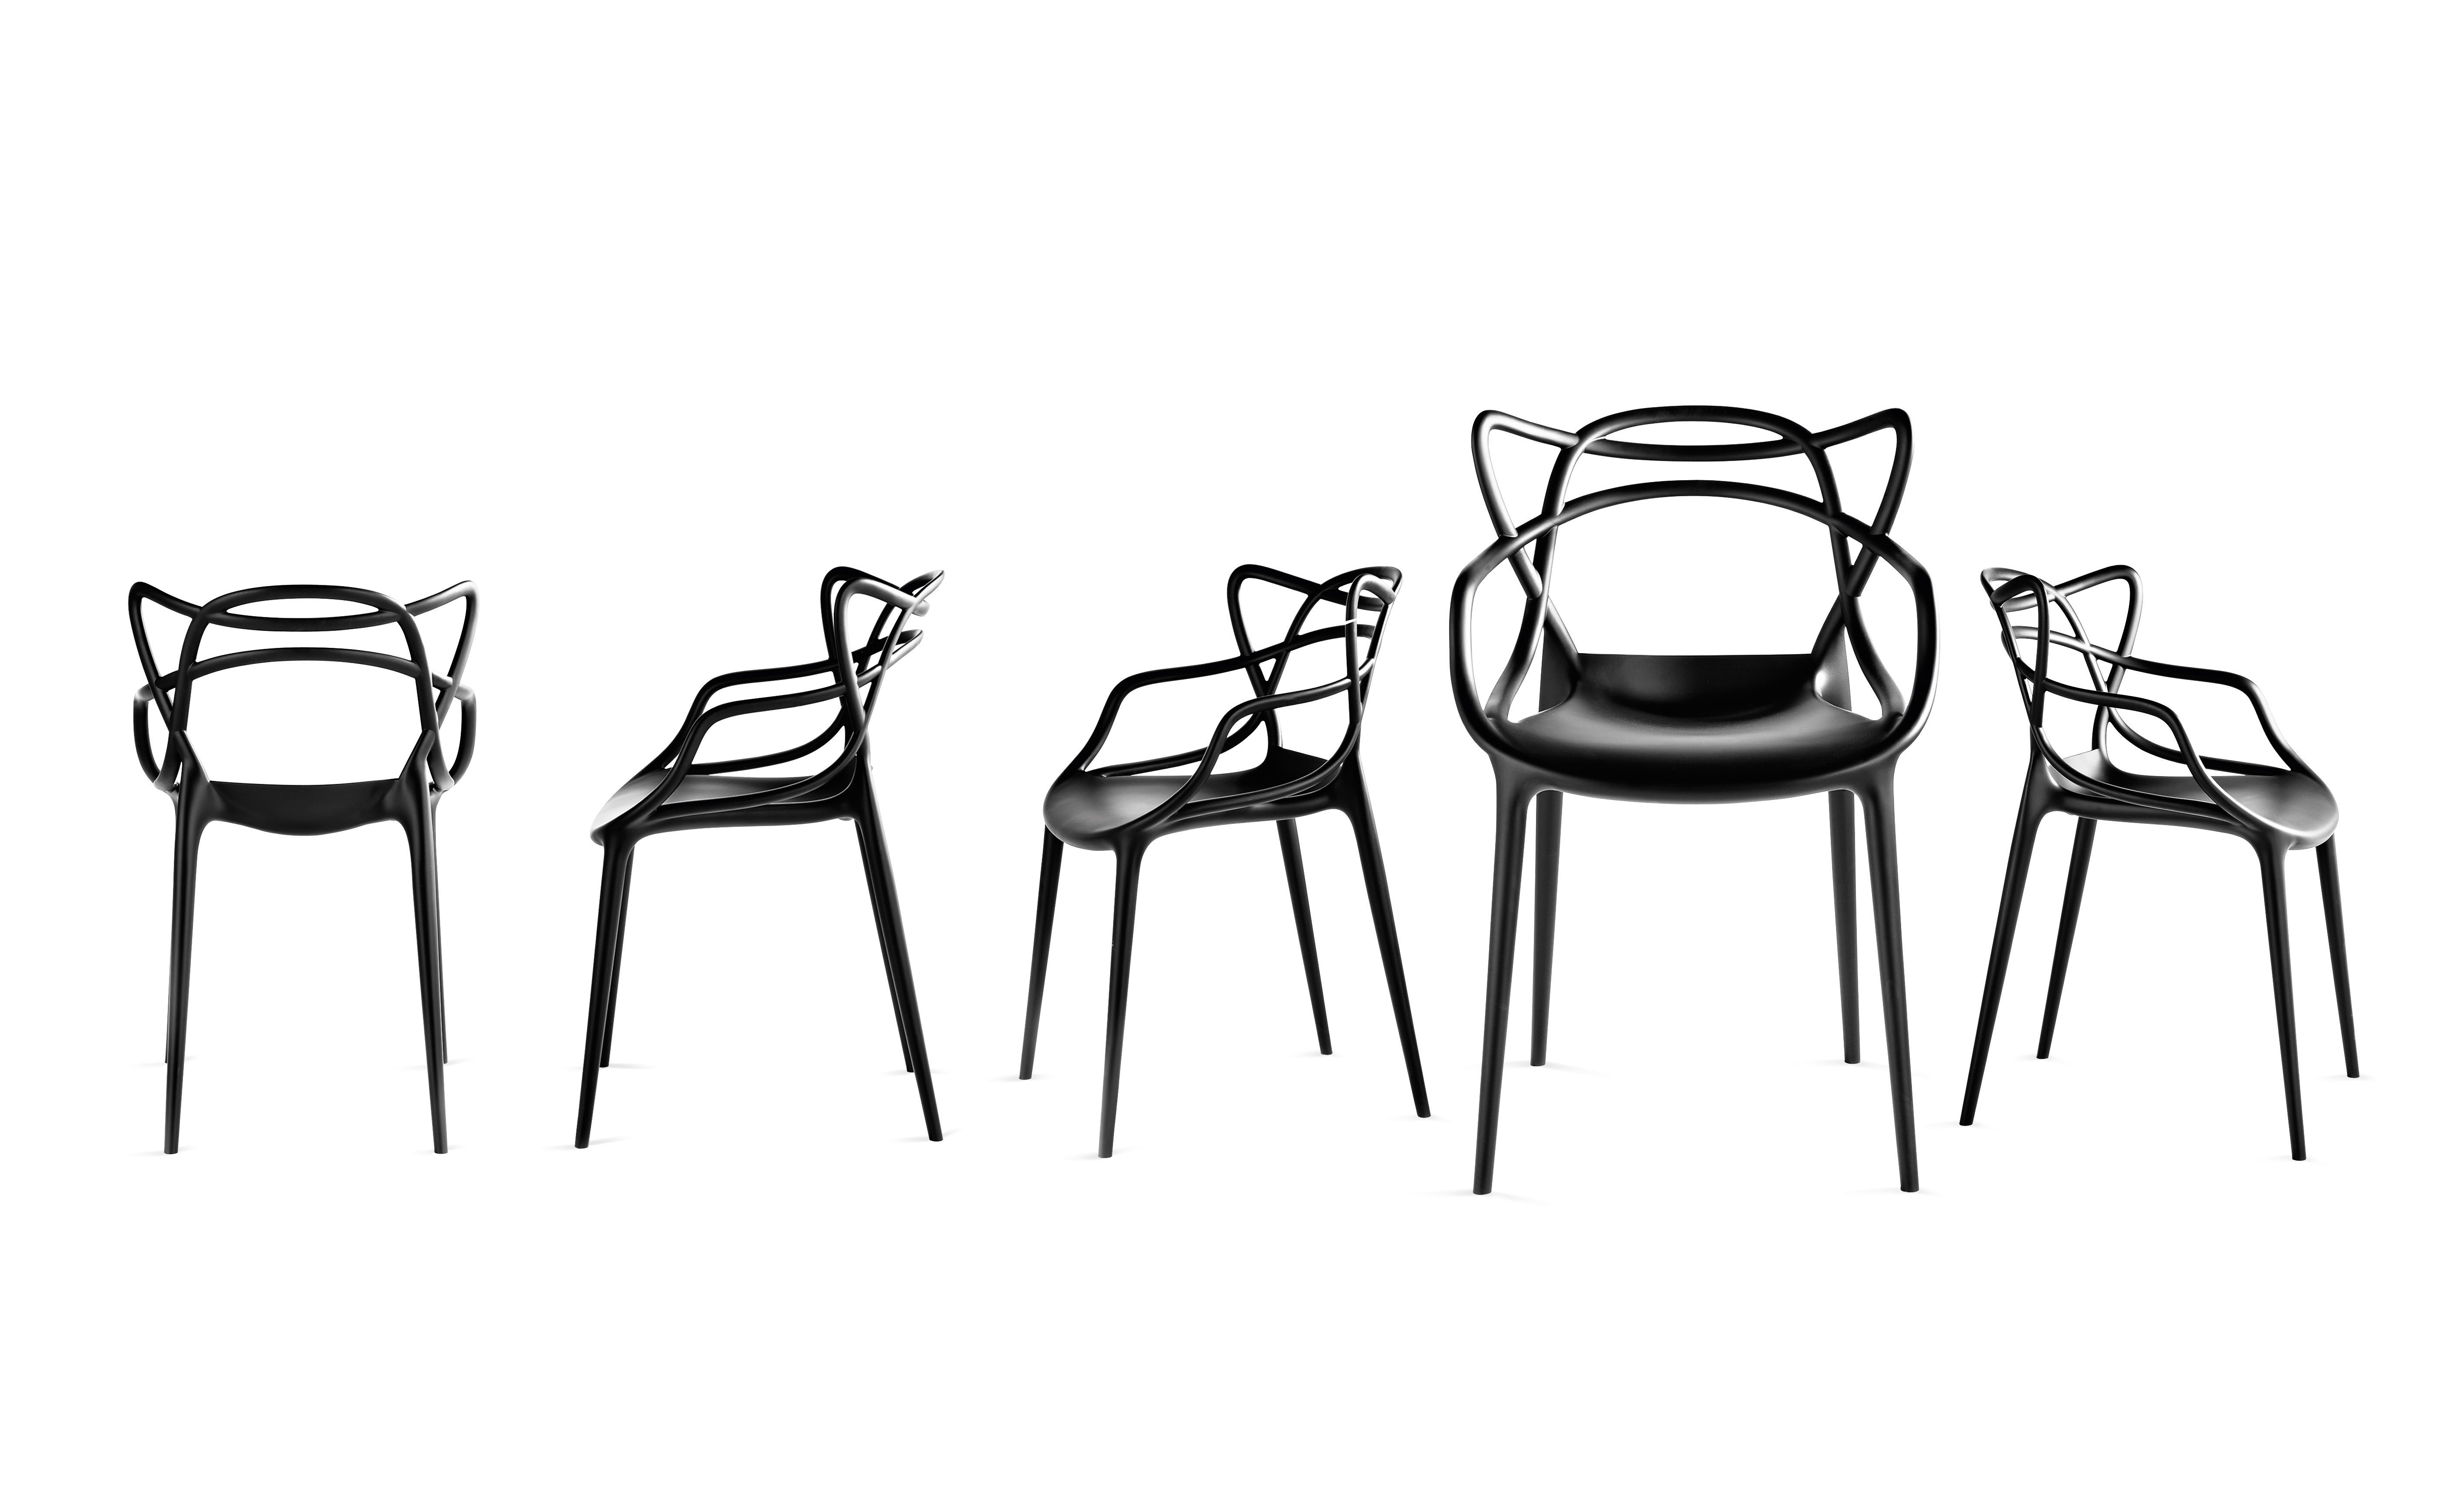 Masters Chair With Arms By Philippe Starck With Eugeni Quitllet For Kartell